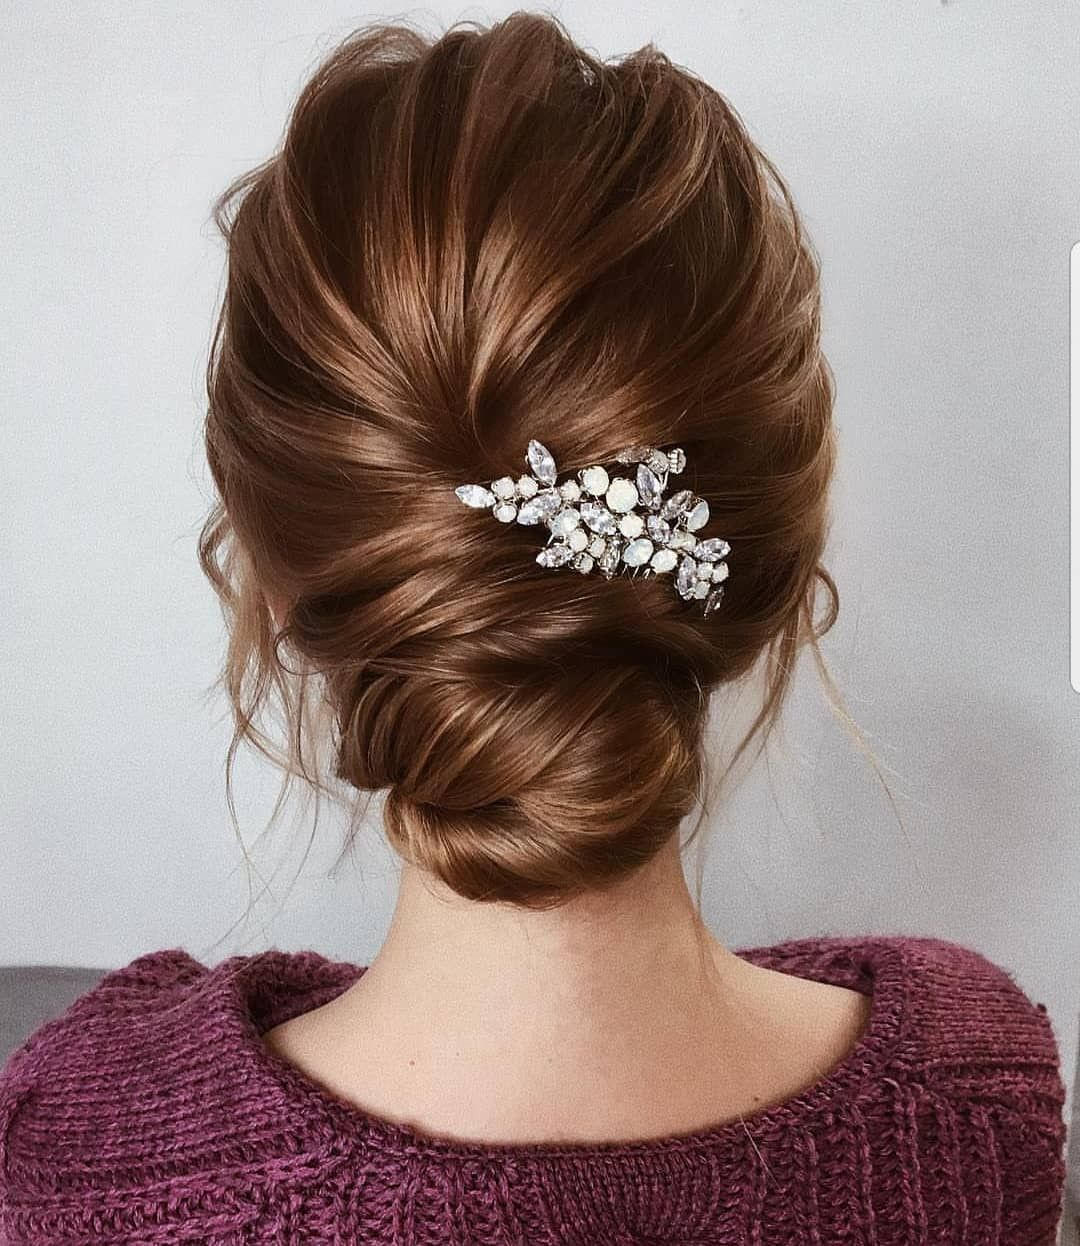 Emilia On Instagram Simplicity At Its Finest Credit Goes To A Russian Professional Lenaboguc Short Updo Wedding Bridal Hair Comb Crystal Wedding Hairstyles